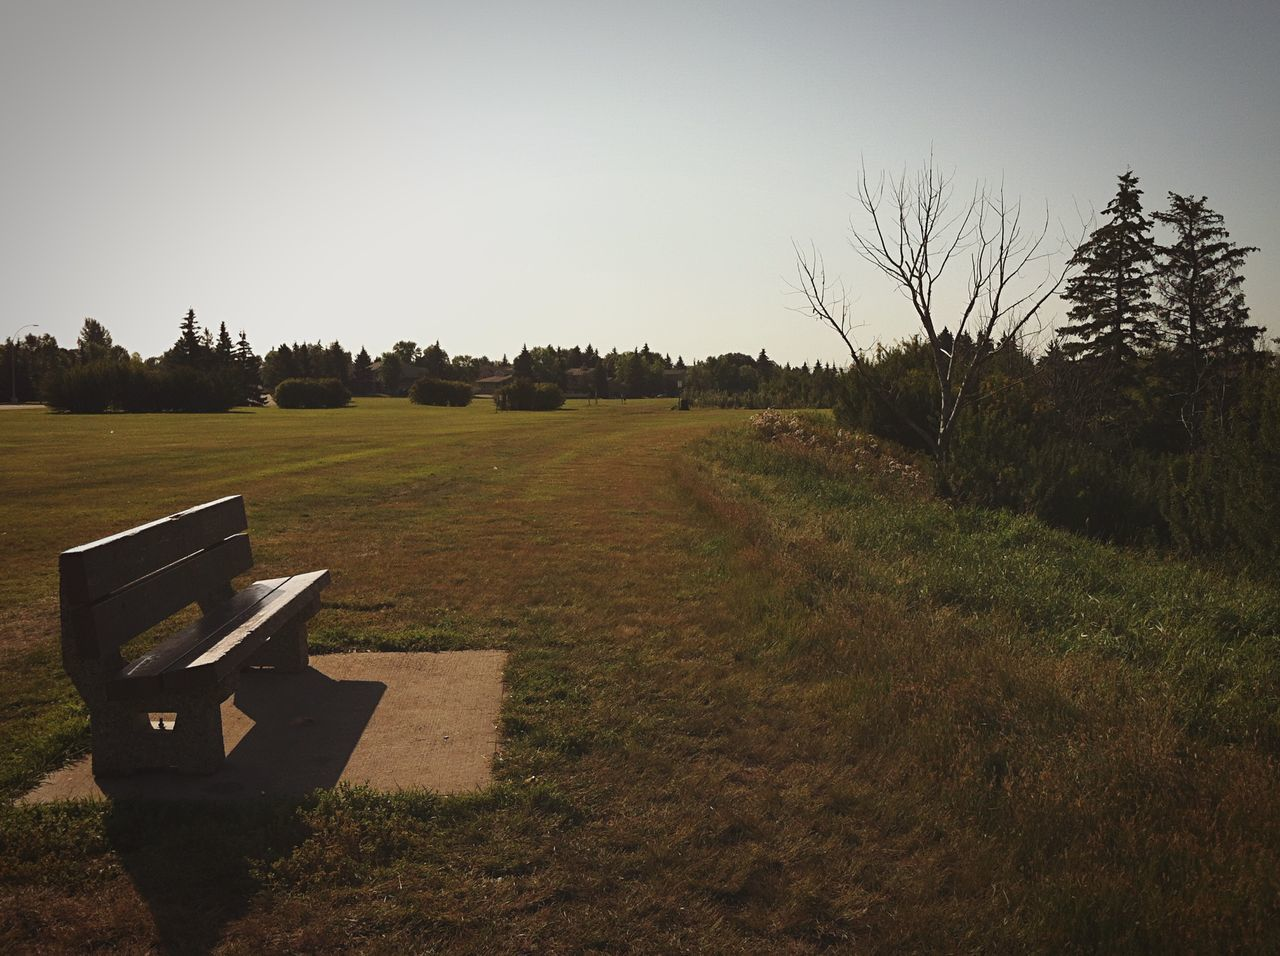 View Of Bench In Park Against Sky